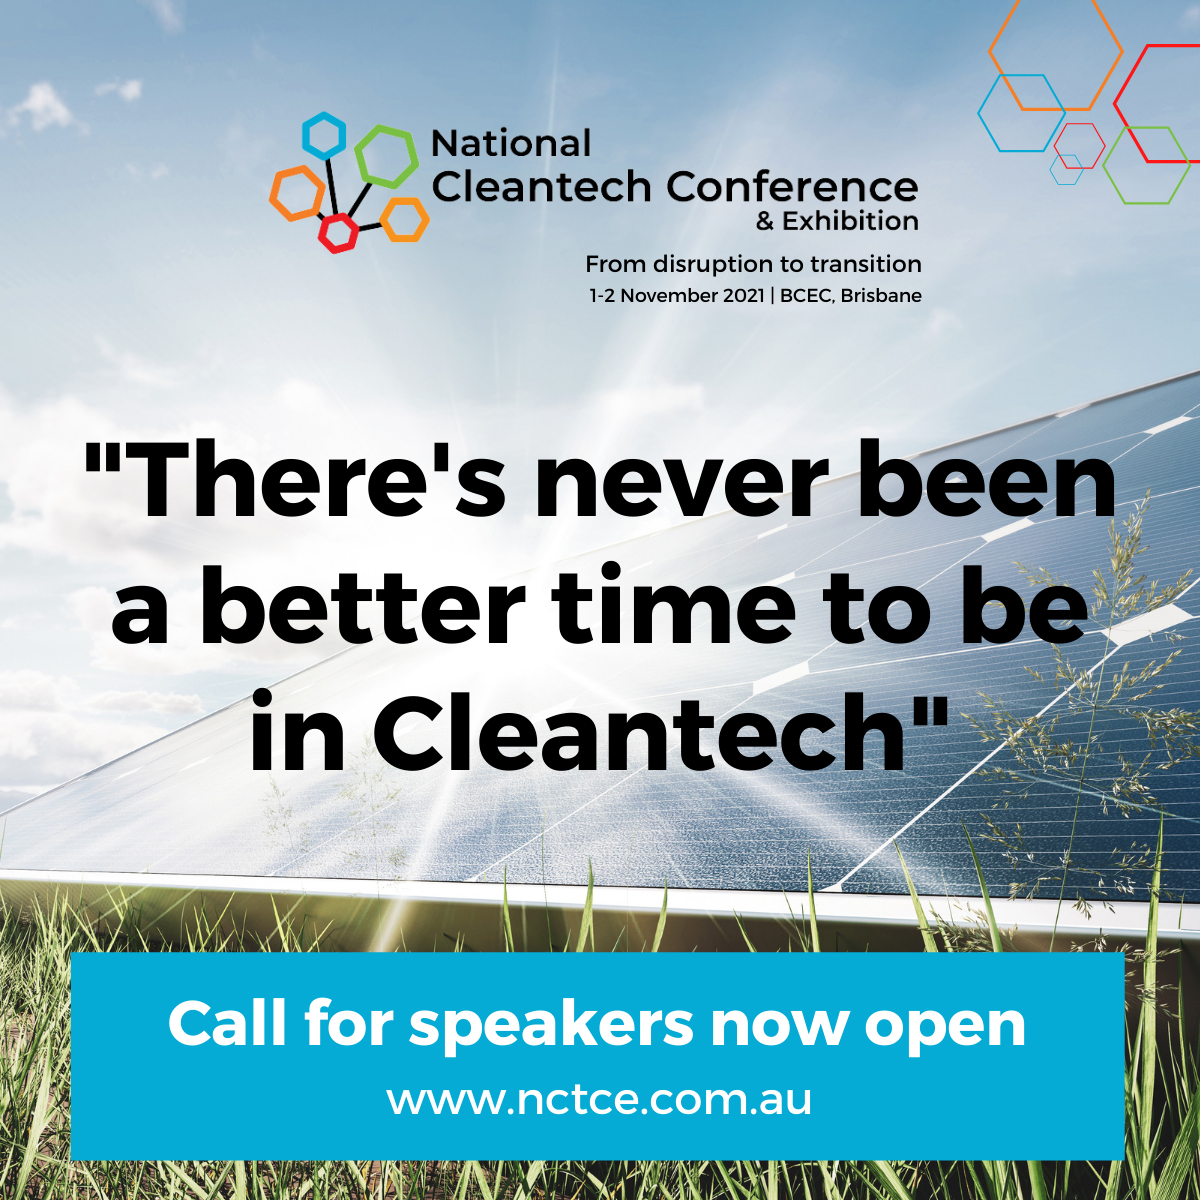 NCTCE opens call for speakers